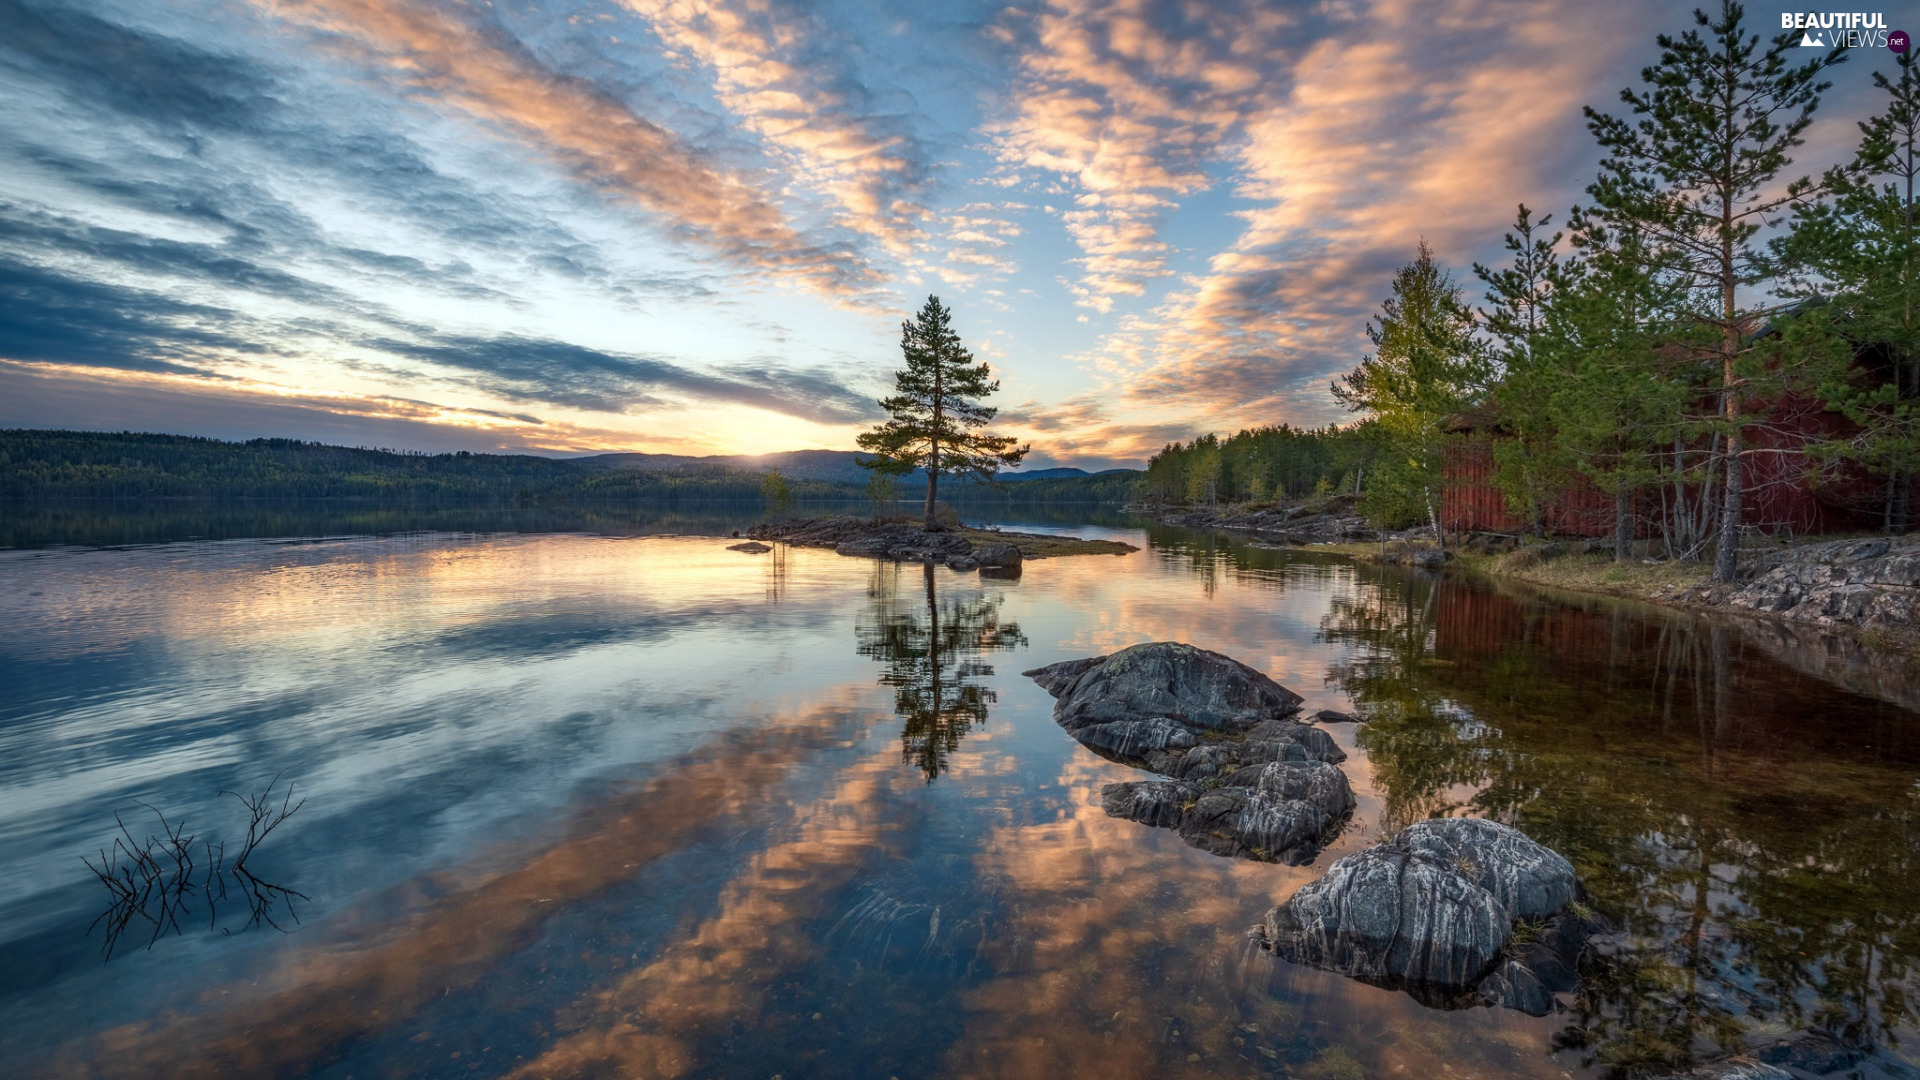 trees, lake, viewes, Stones, Ringerike, Norway, clouds, Great Sunsets, Sky